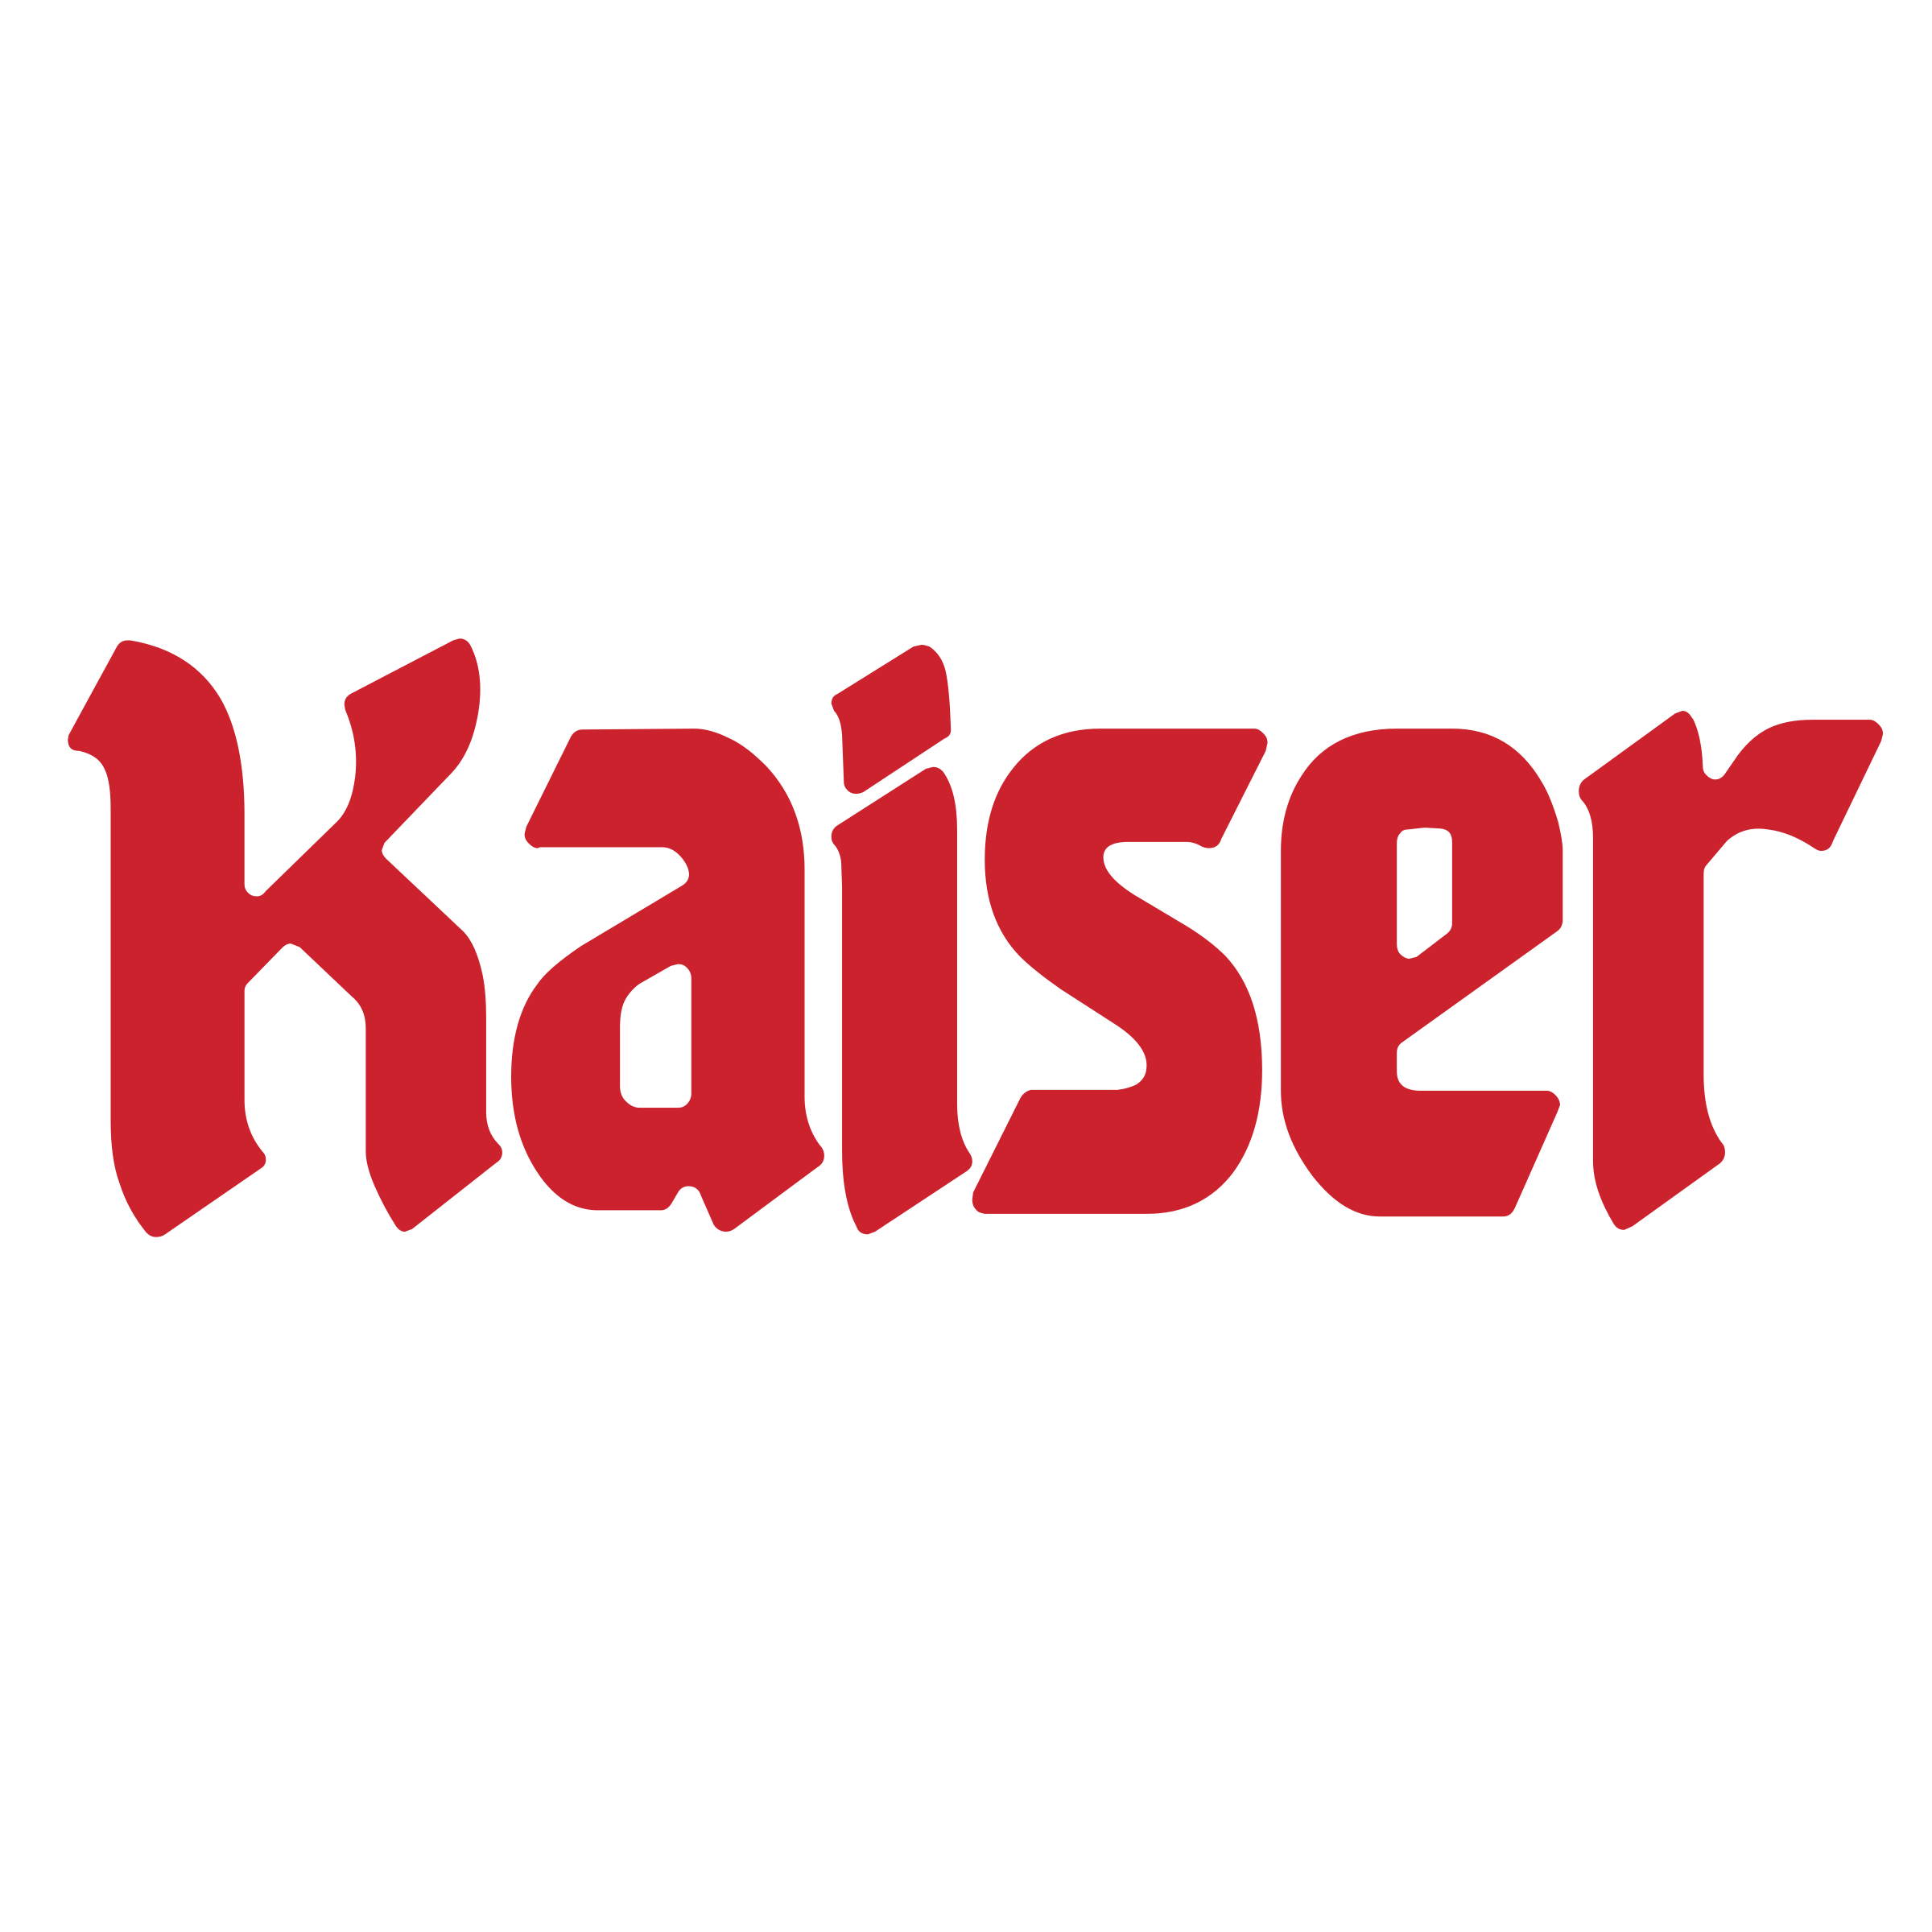 Kaiser Logo PNG Transparent & SVG Vector.